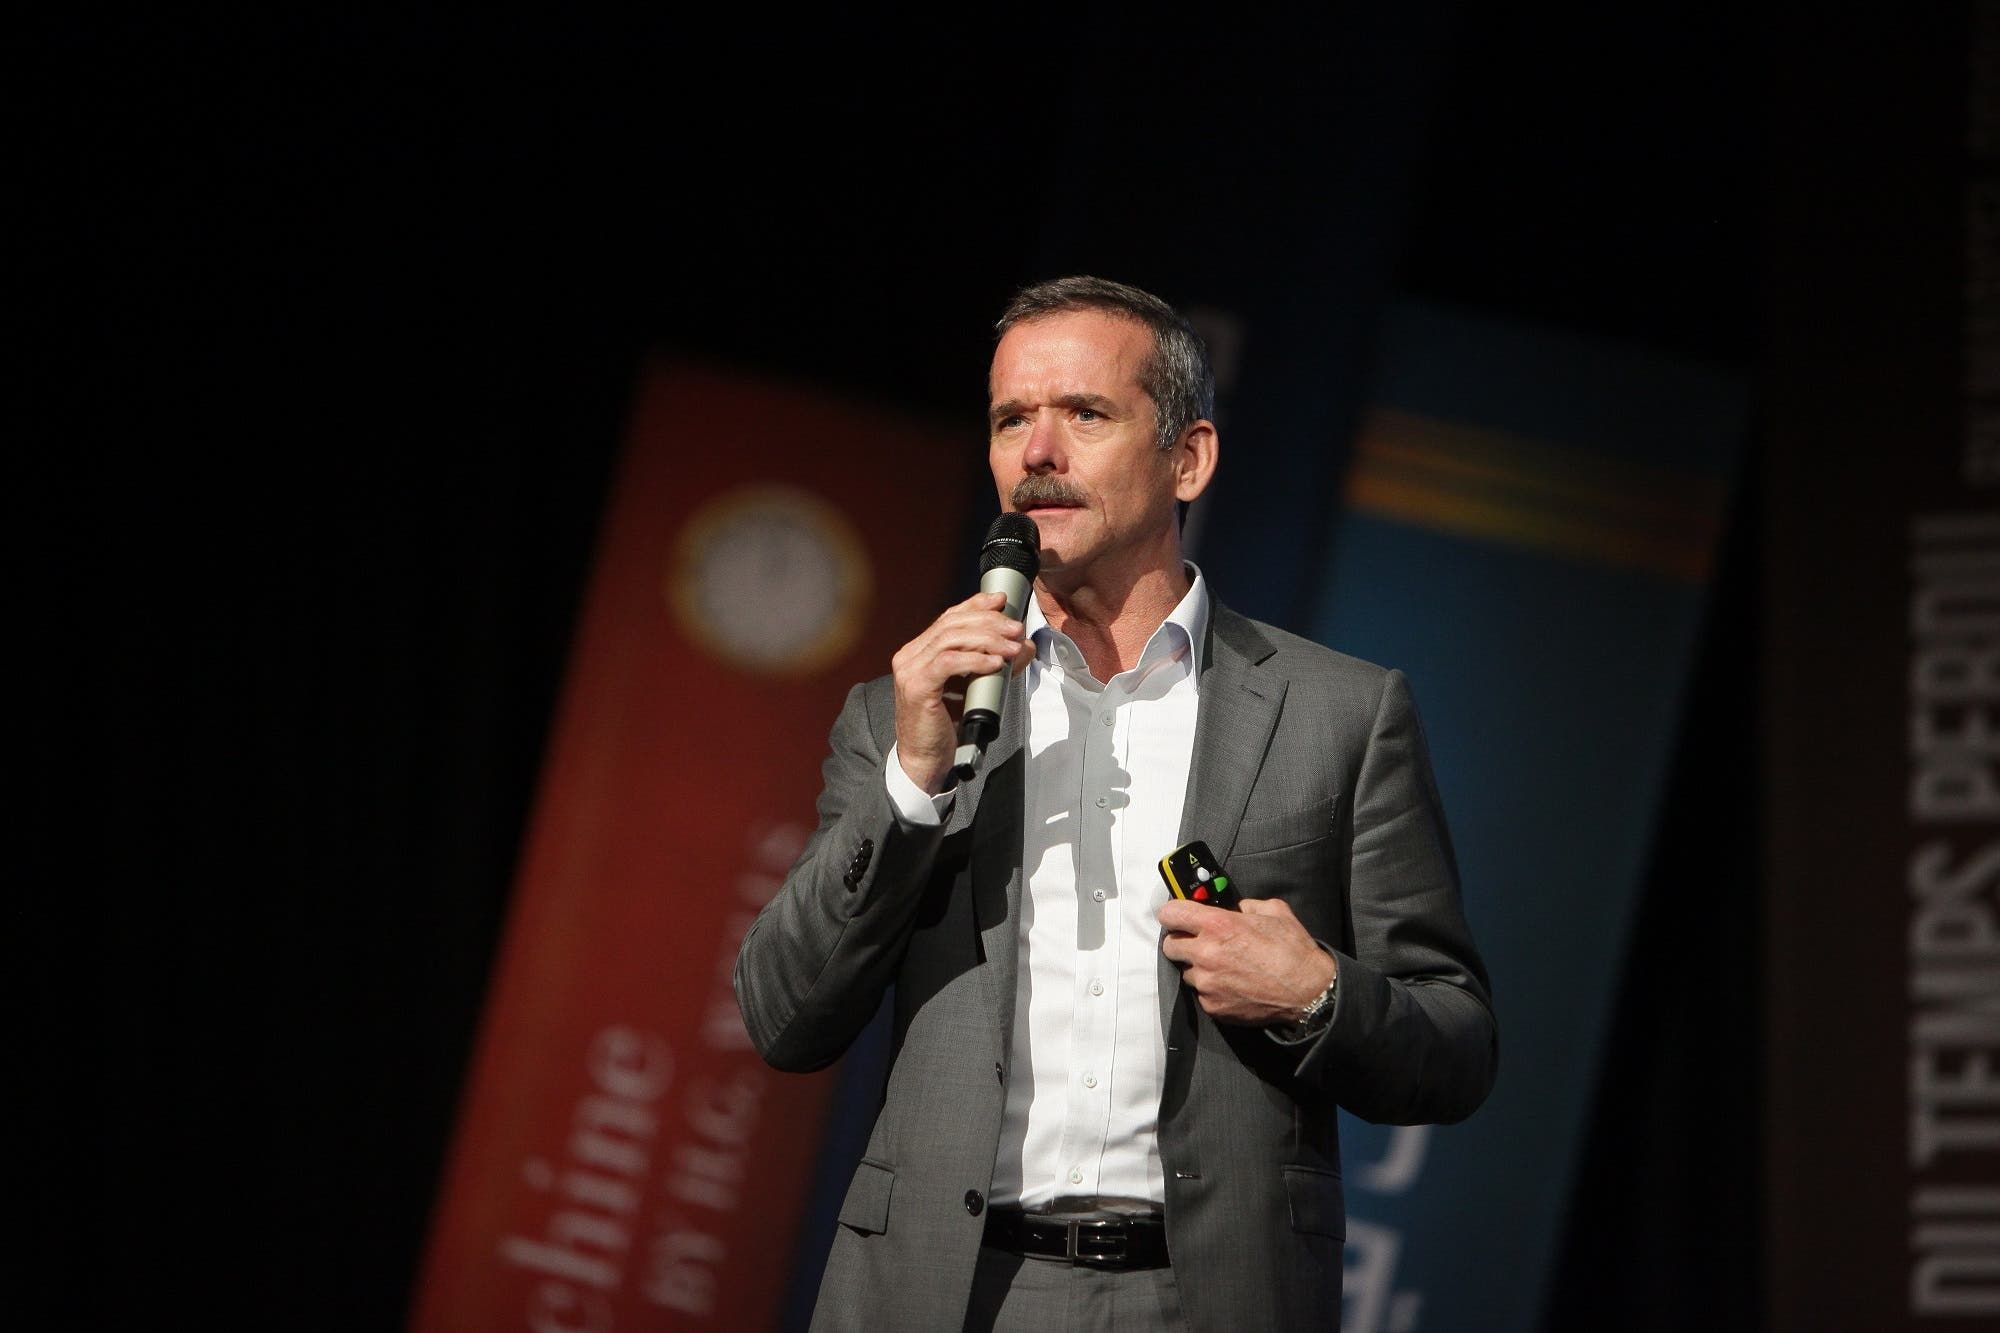 astronaut Chris Hadfield gave the final speech of the evening. (Emirates Literature Festival)